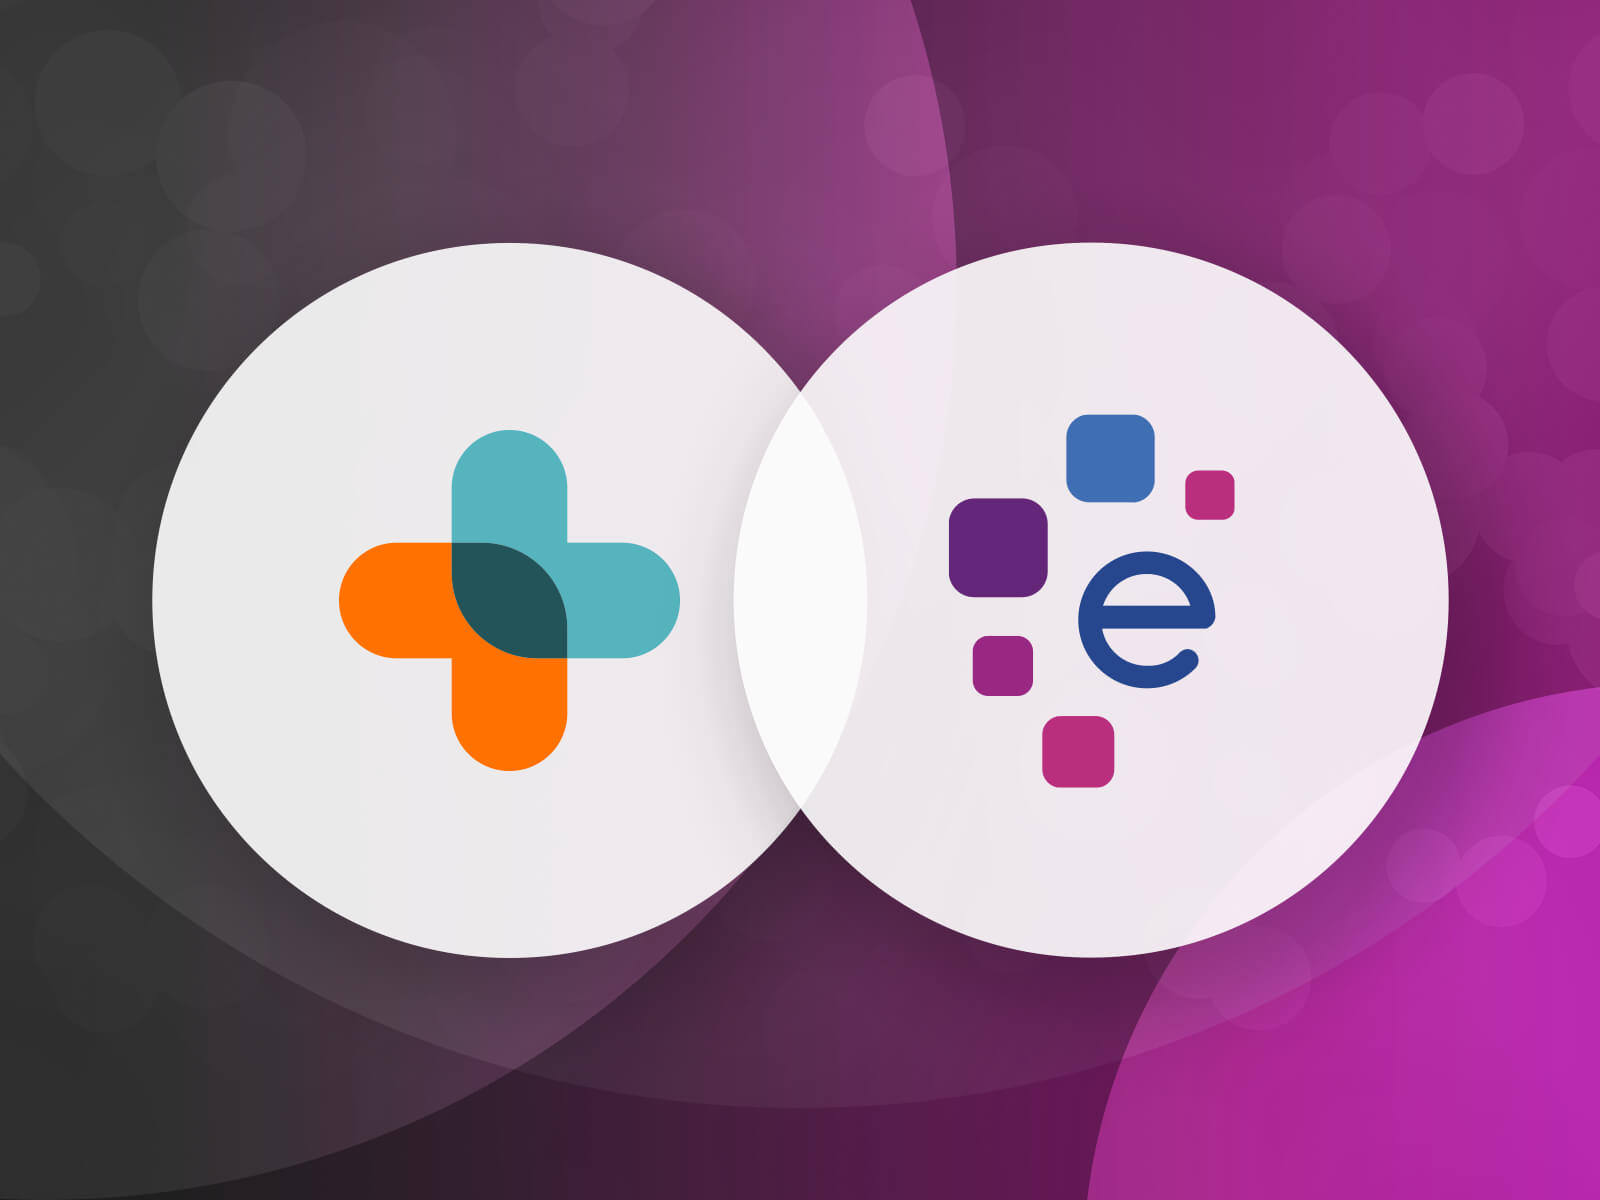 With expanded relationship, Experian and InfoSum help marketers in a post-third-party cookie ecosystem